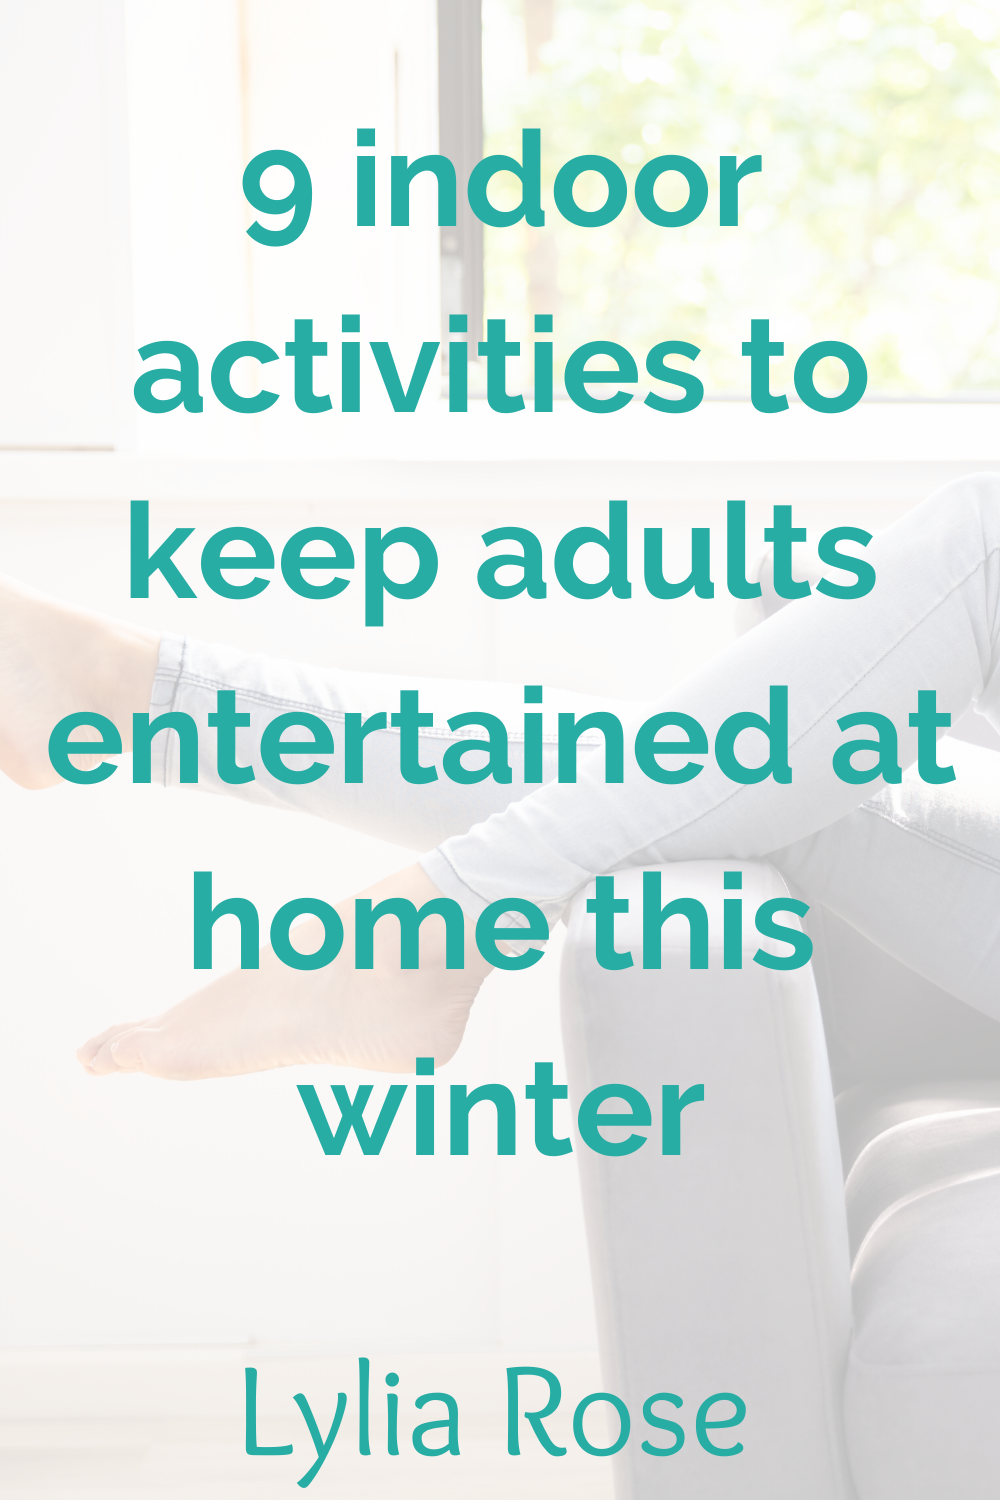 9 indoor activities to keep adults entertained at home this winter